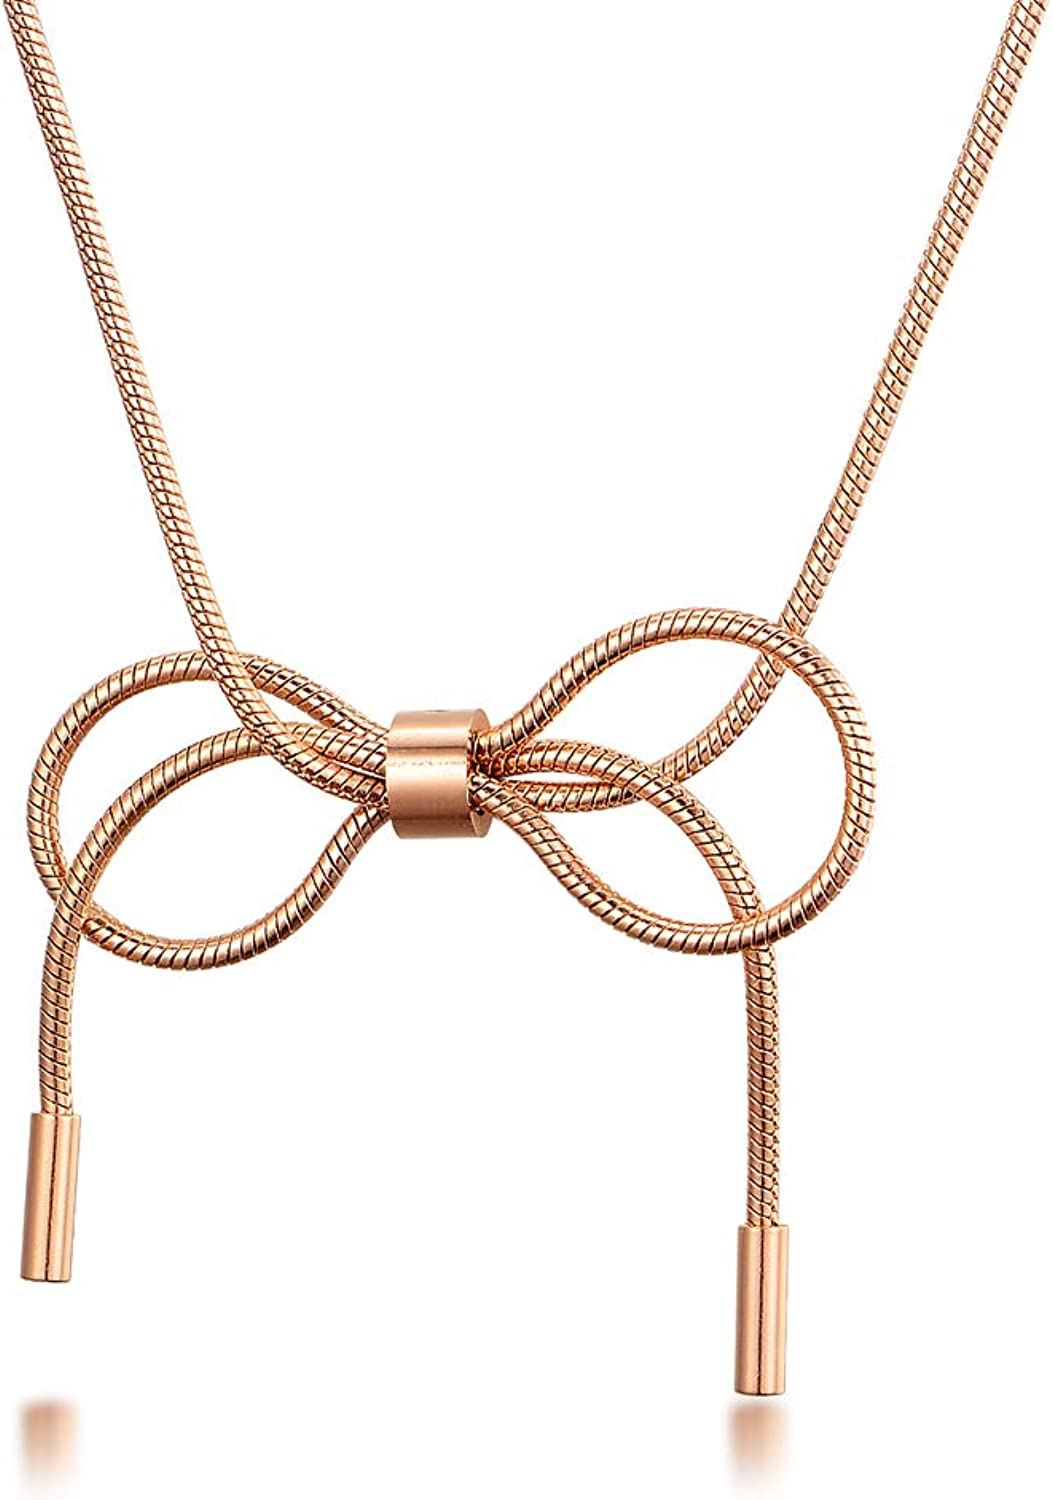 SCARL Rose Gold Fashion Charm Bow Knot Rope Dainty Choker Necklaces for Women